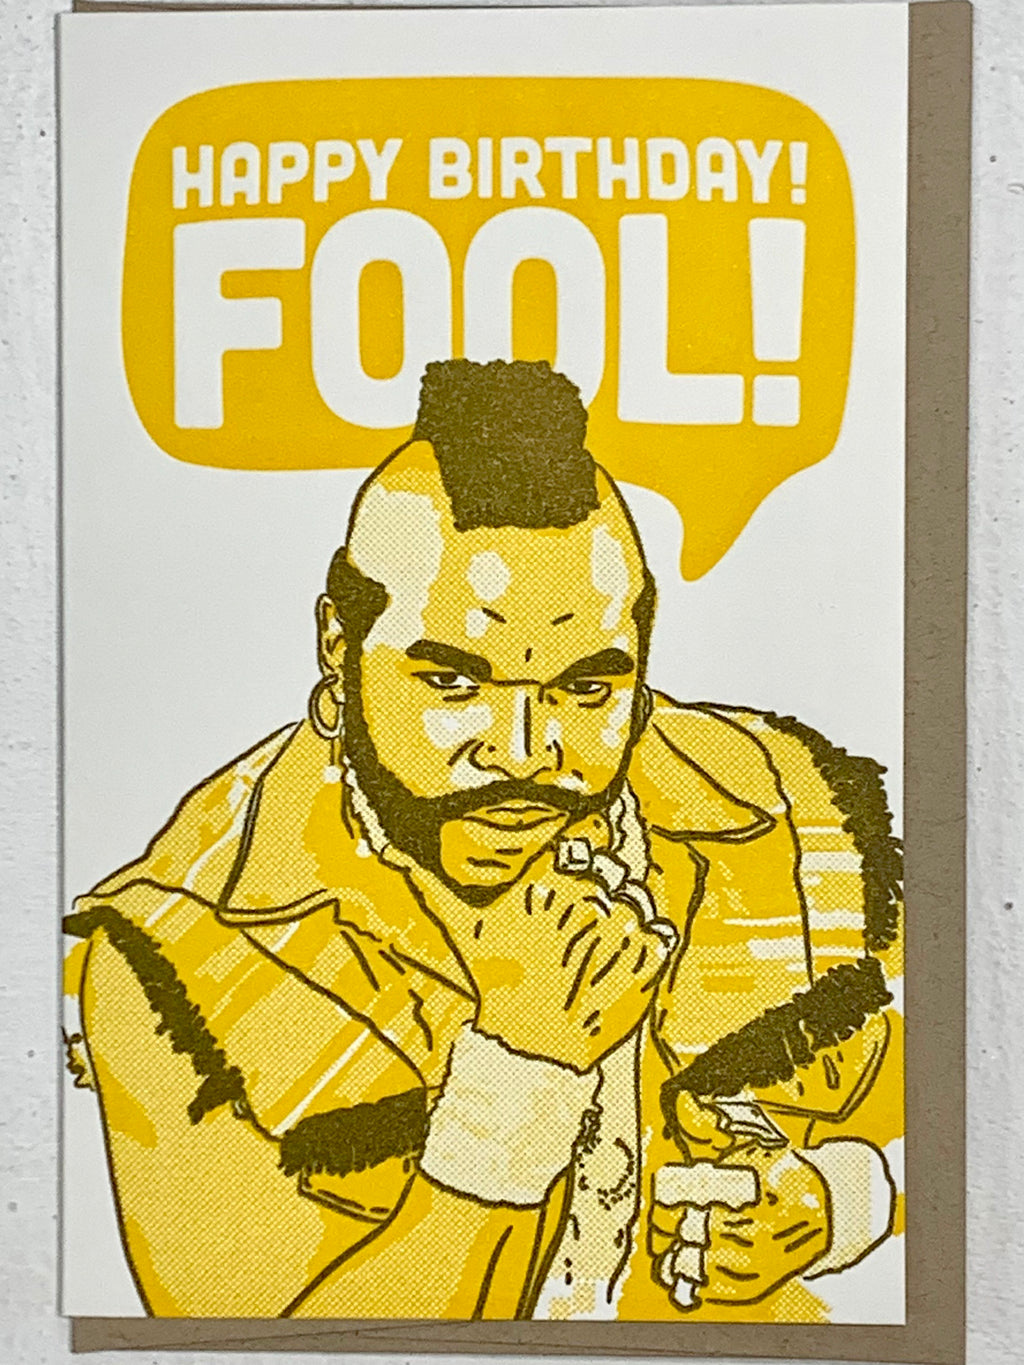 Happy Birthday FOOL! Card